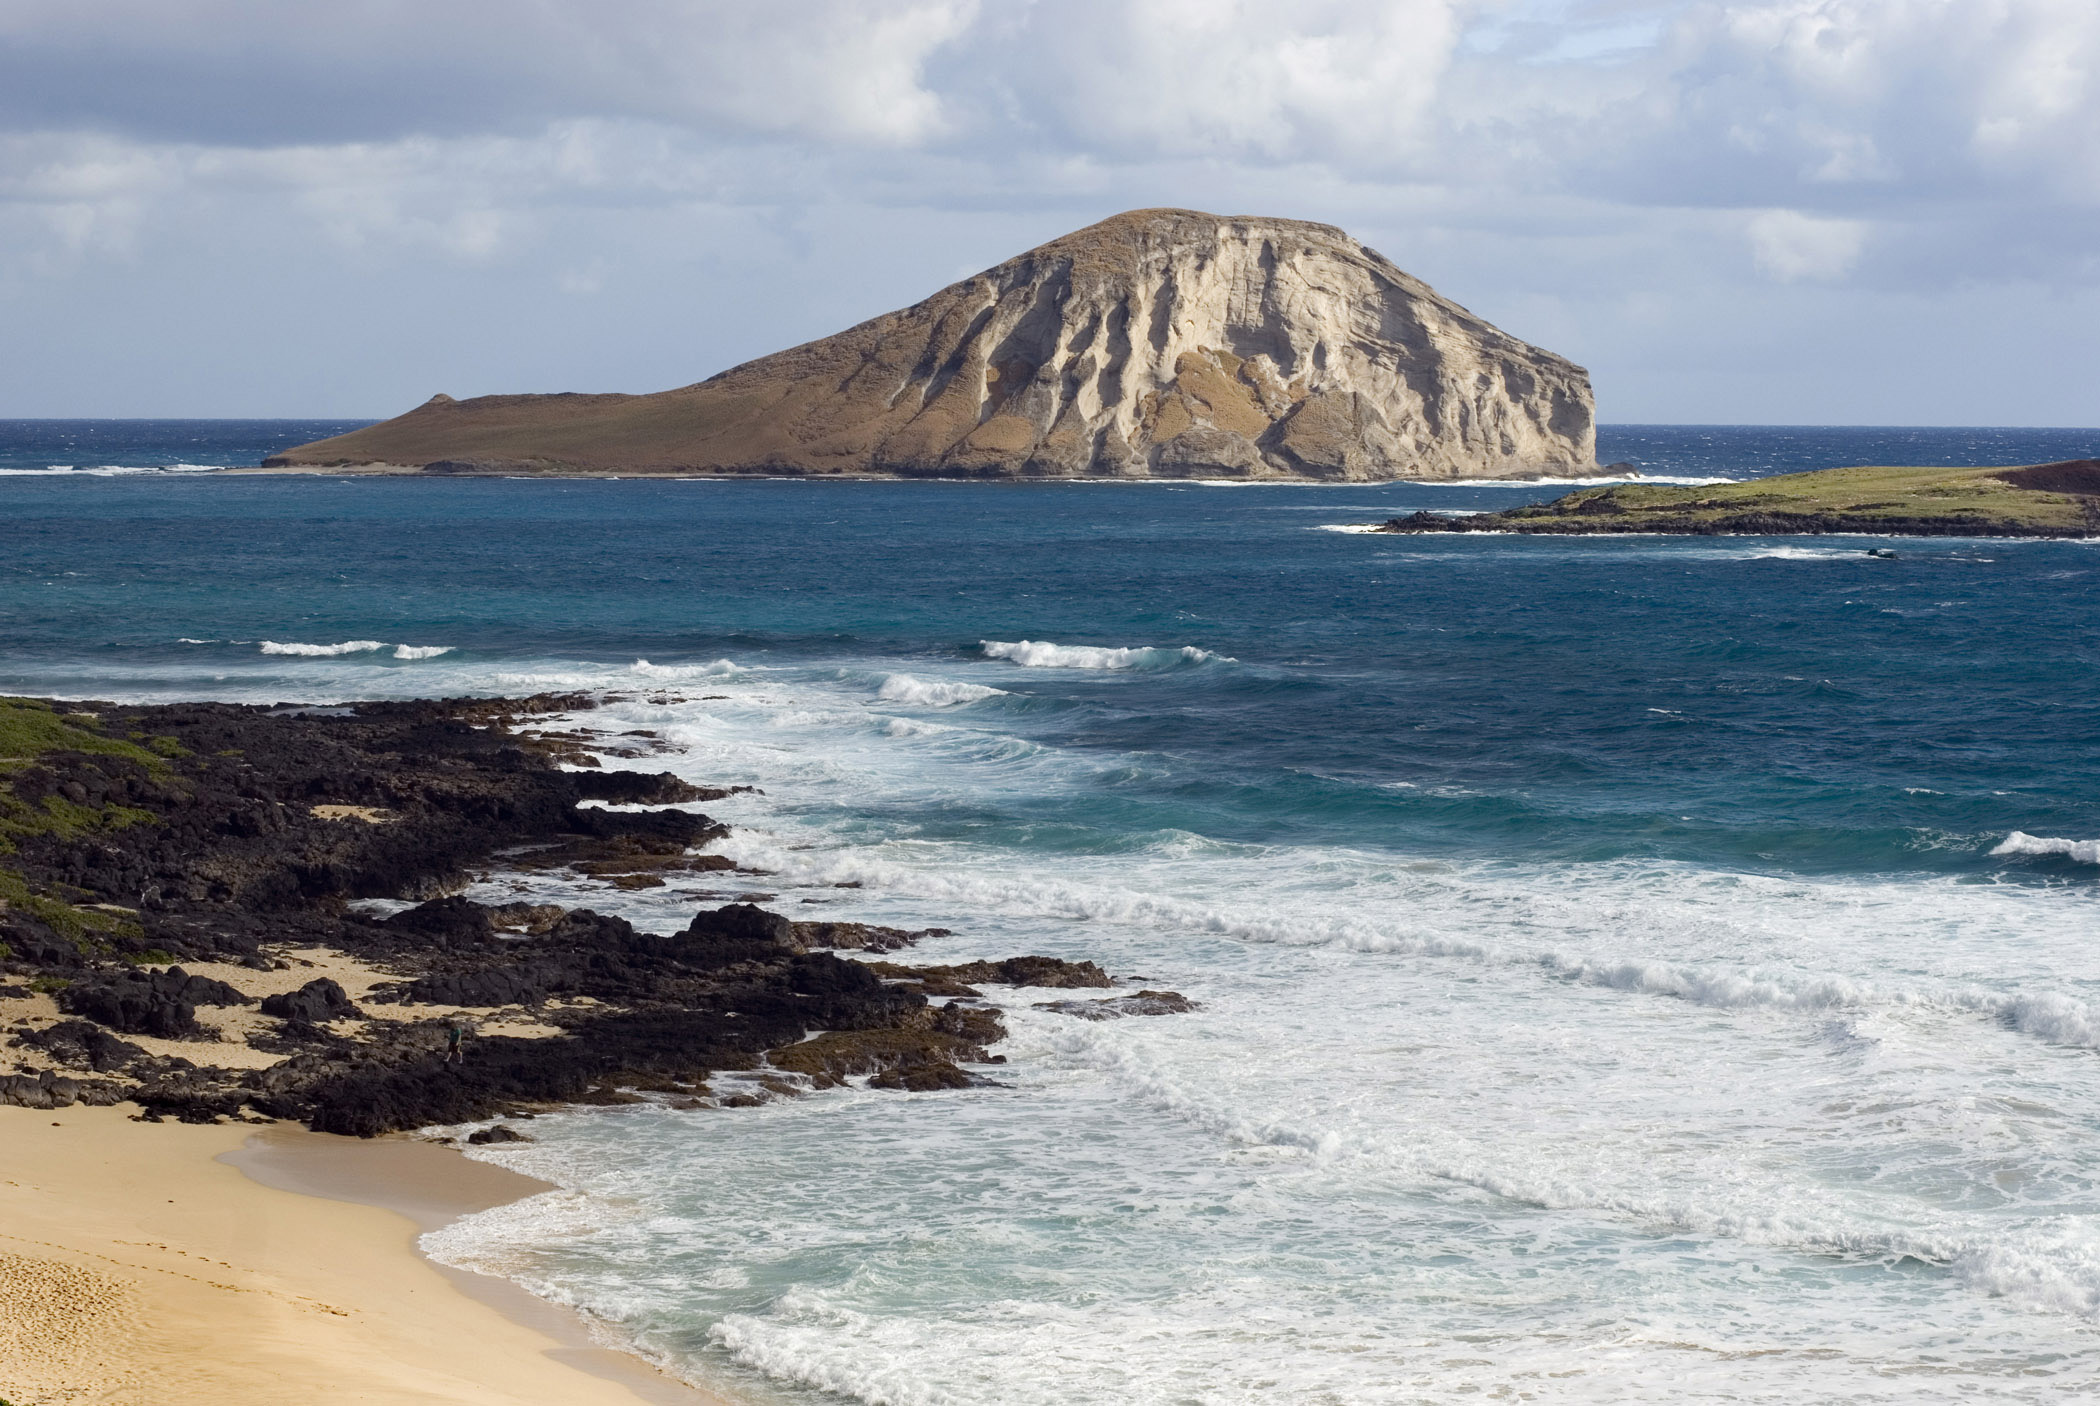 View from the beach of Kaohikaipu Island, or Turtle Island, and Manana Island, Oahu, Hawaii, also known as Rabbit Island